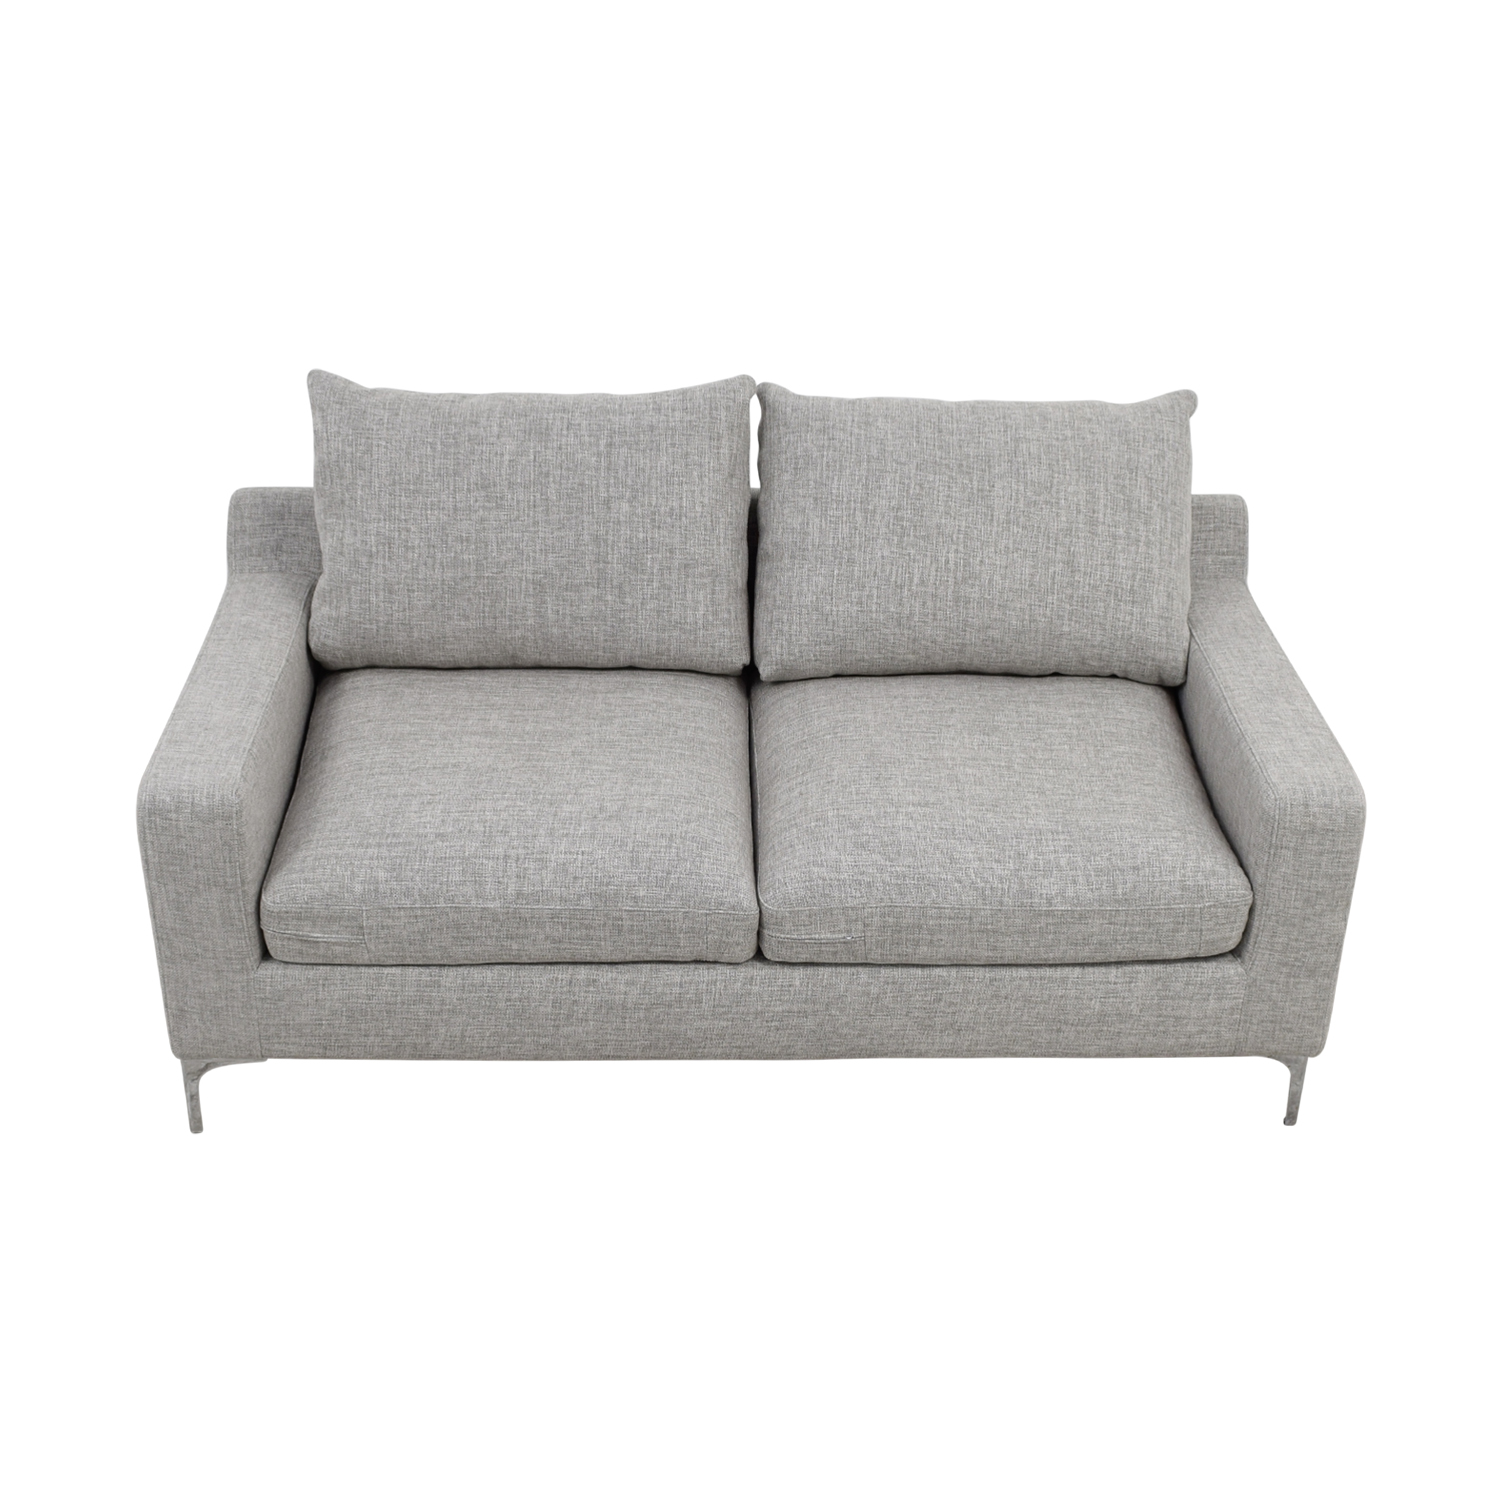 Sloan Light Grey Two-Cushion Sofa nyc